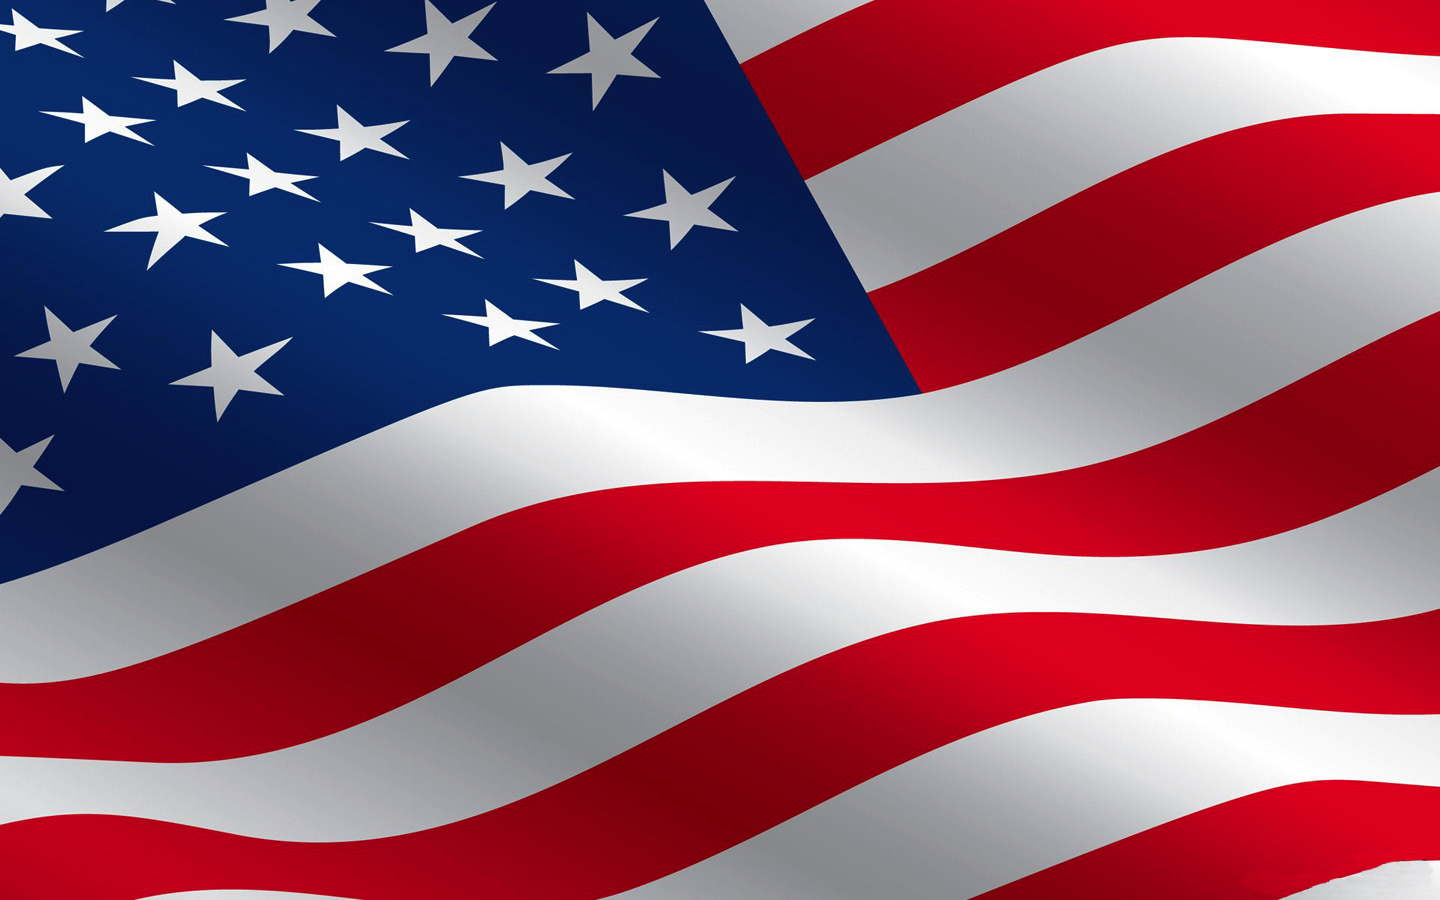 Free Download American Flag Wallpapers 1440x900 For Your Desktop